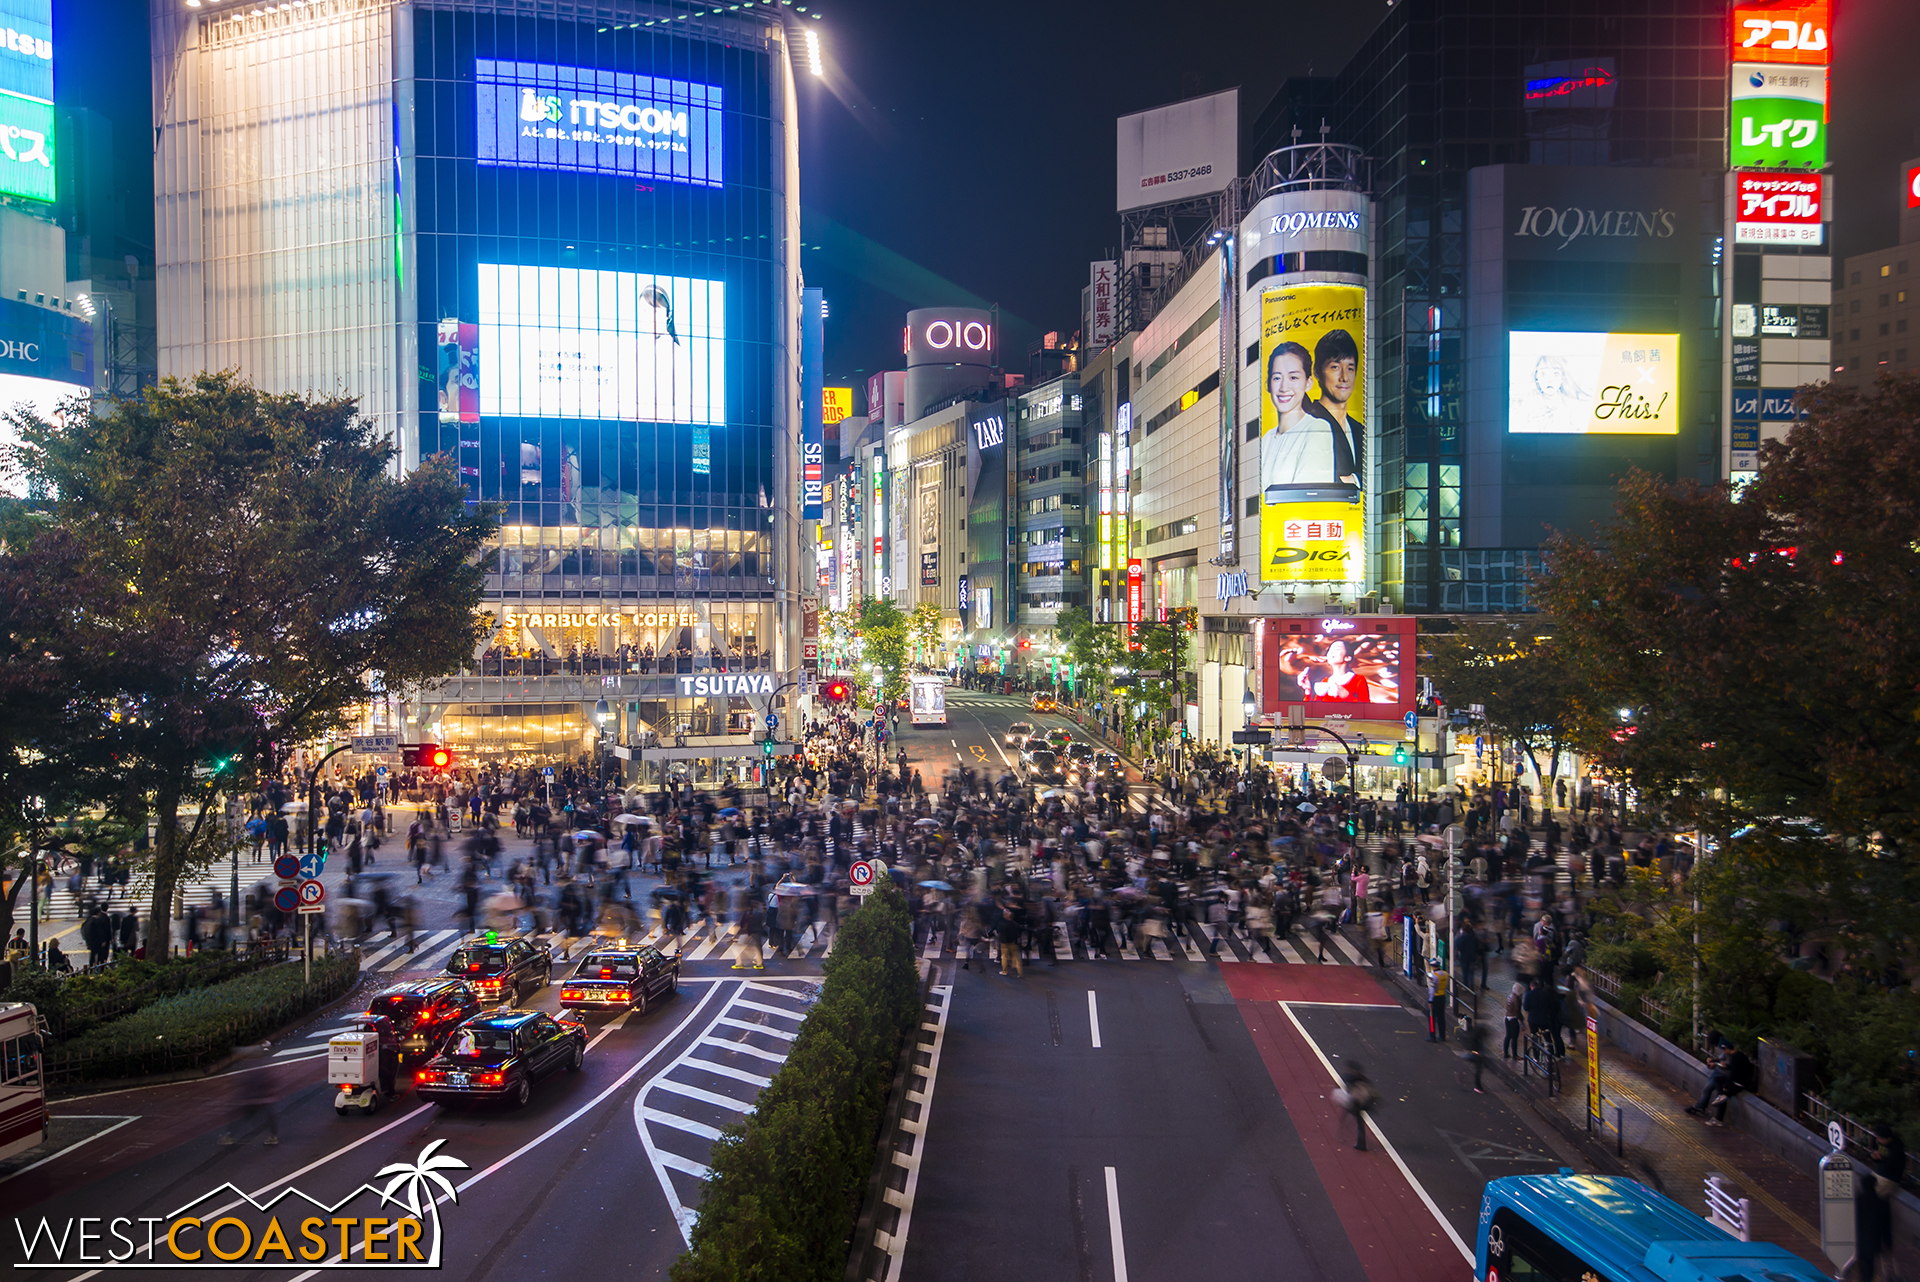 World famous Shibuya Crossing, one of the dynamic and electric intersections on Earth.